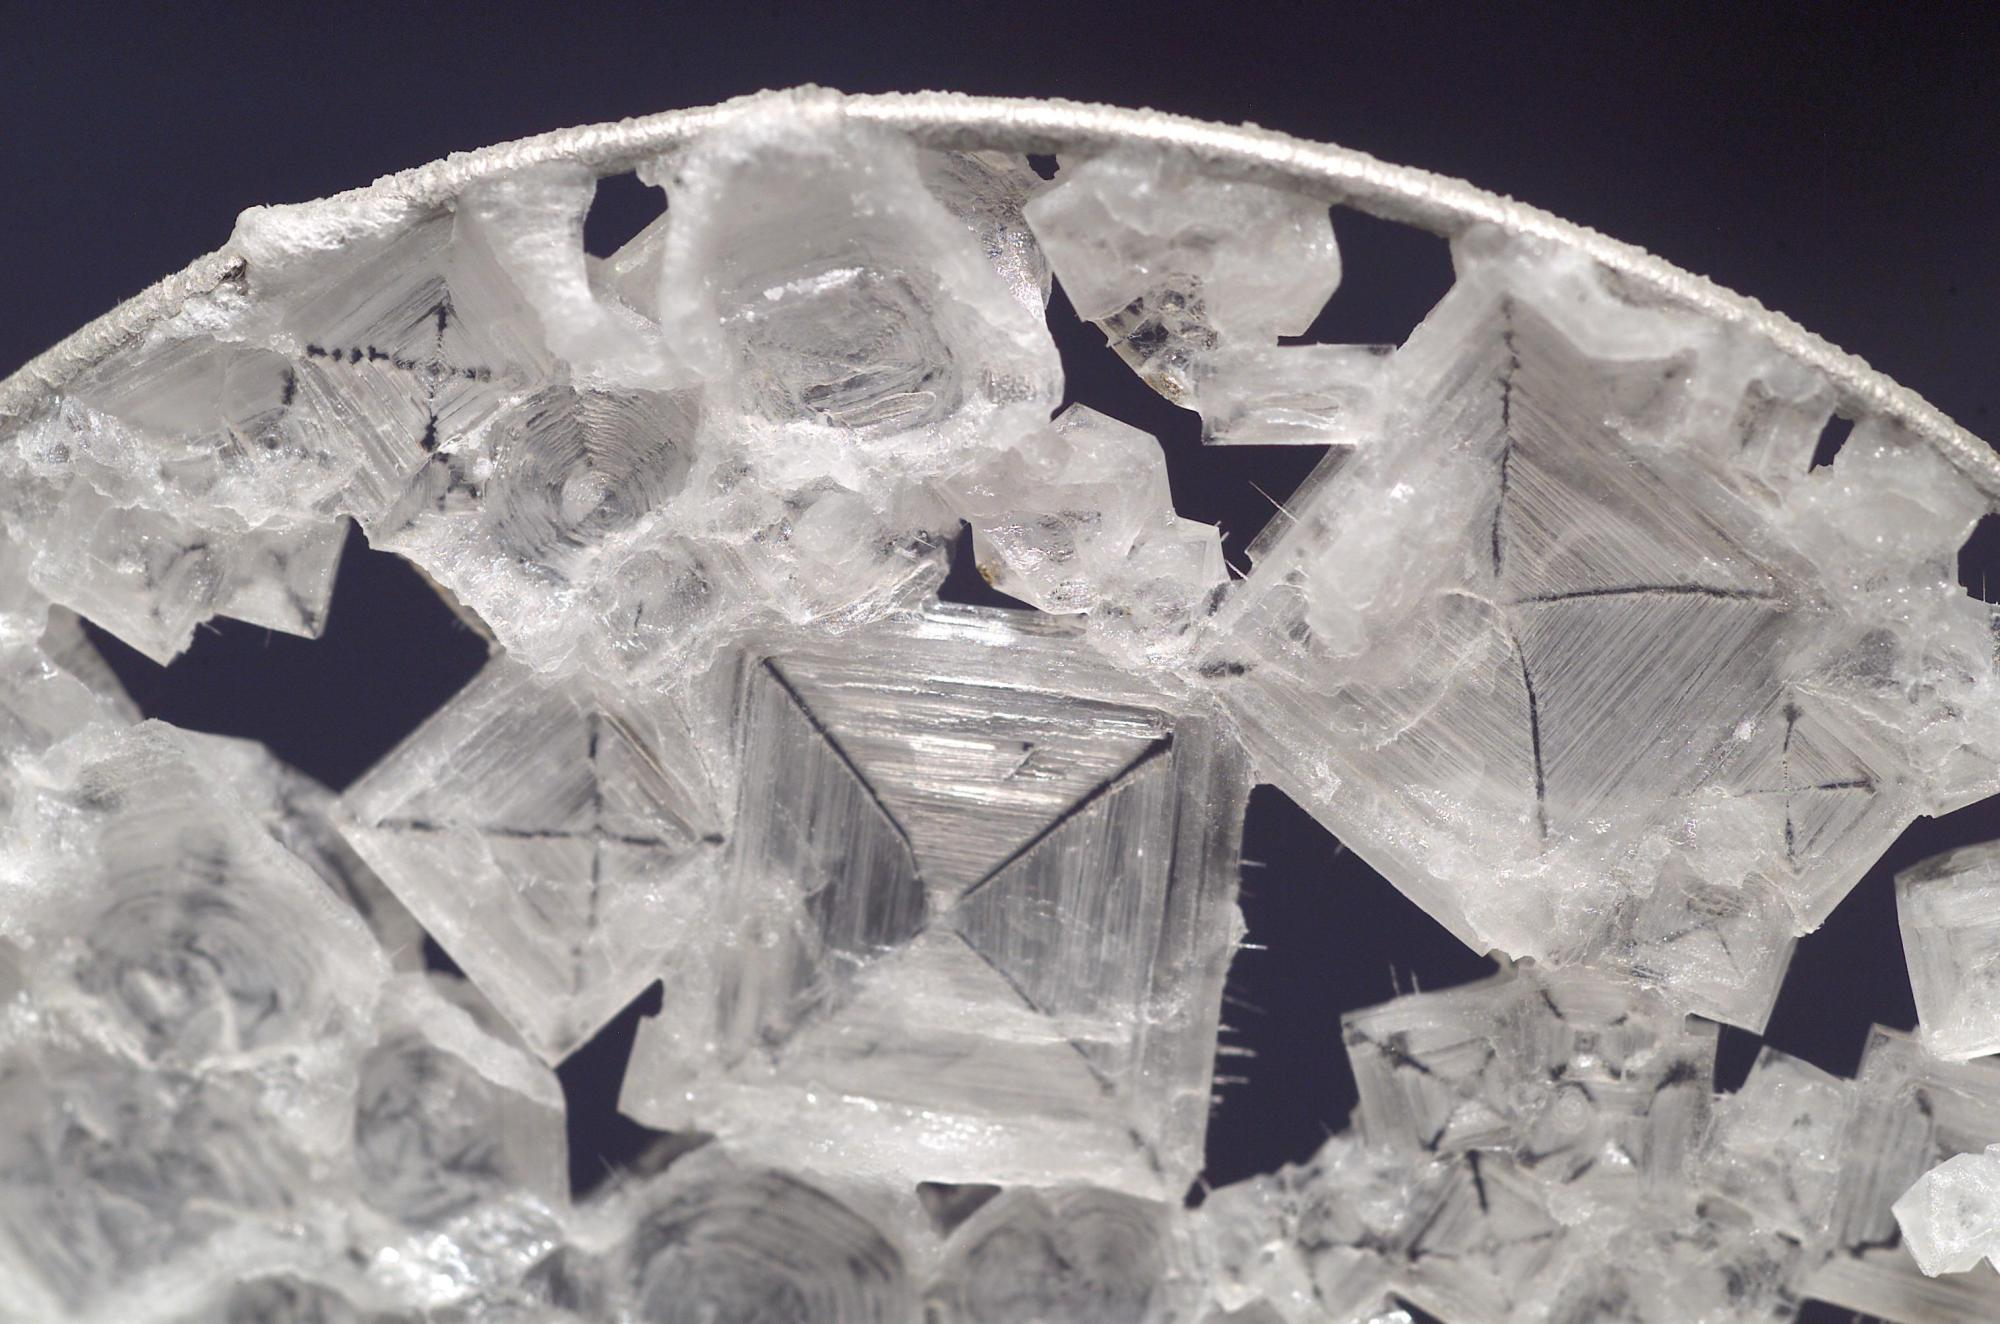 hight resolution of close up view of colorless sodium chloride crystals which have the overall shape of a